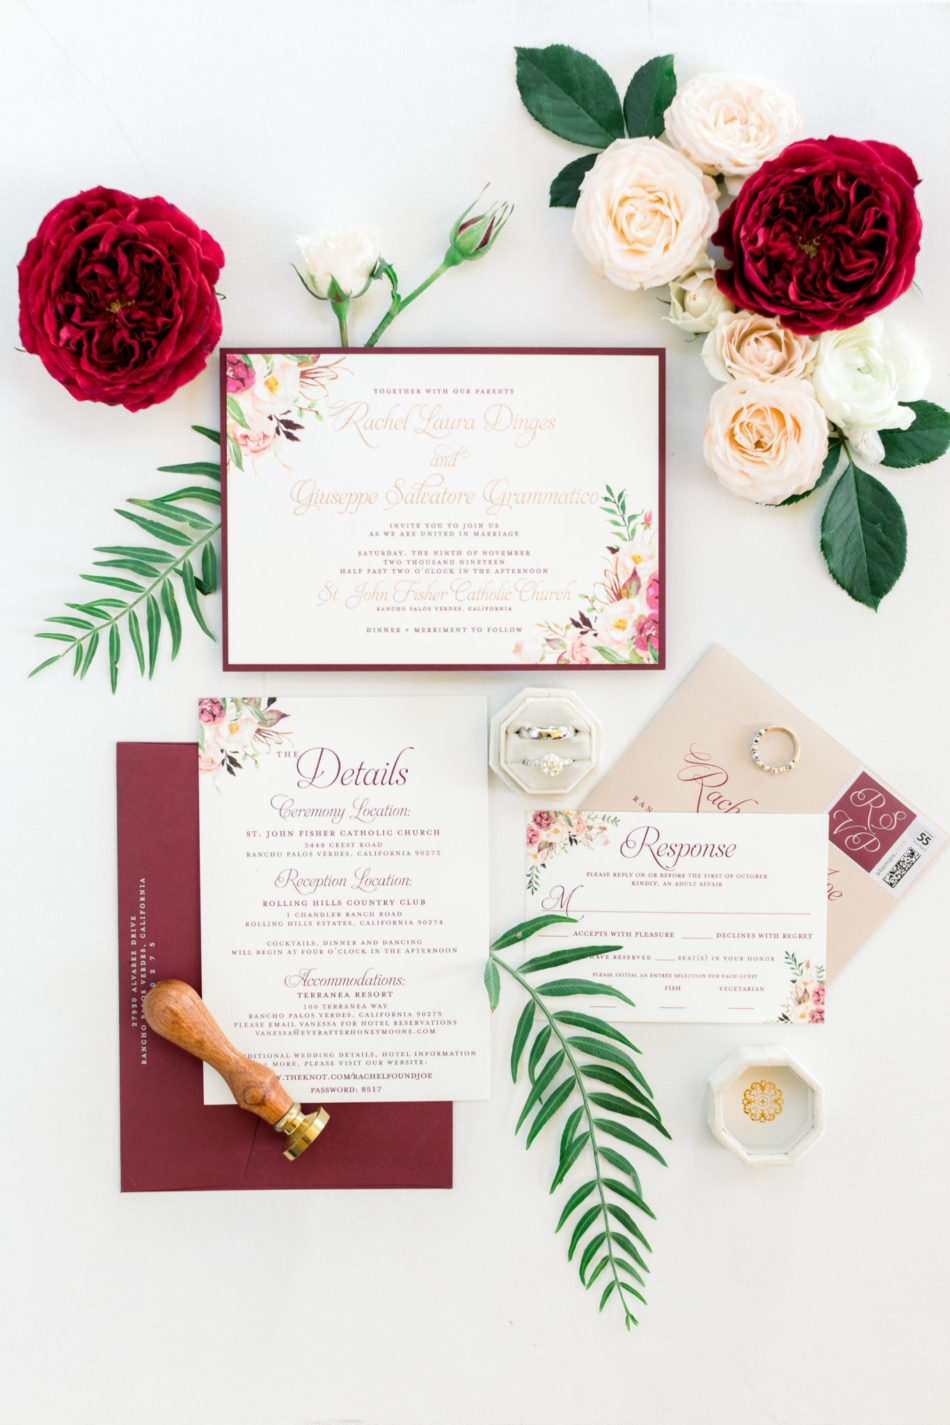 burgundy invitations, burgundy stationary, gorgeous floral-filled wedding, floral design, florist, wedding florist, wedding flowers, orange county weddings, orange county wedding florist, orange county florist, orange county floral design, flowers by cina